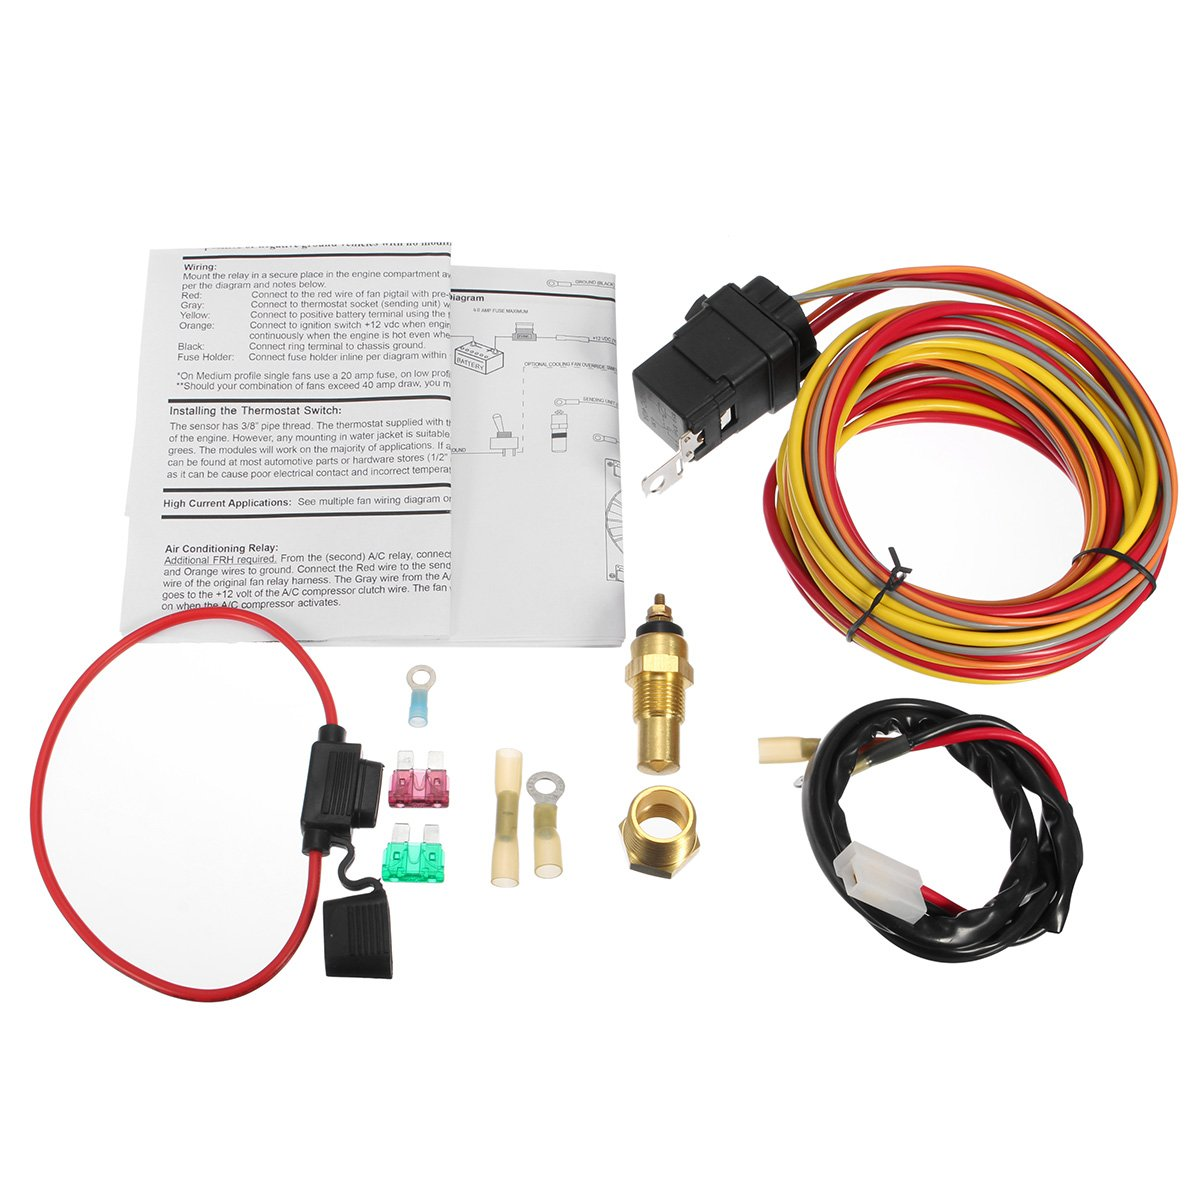 Electrical Equipment Supplies Other How A 12 Volt Relay Works Heavy Duty Dual Electric Fan 40 Amp Wiring Harness Thermostat Sensor Kit